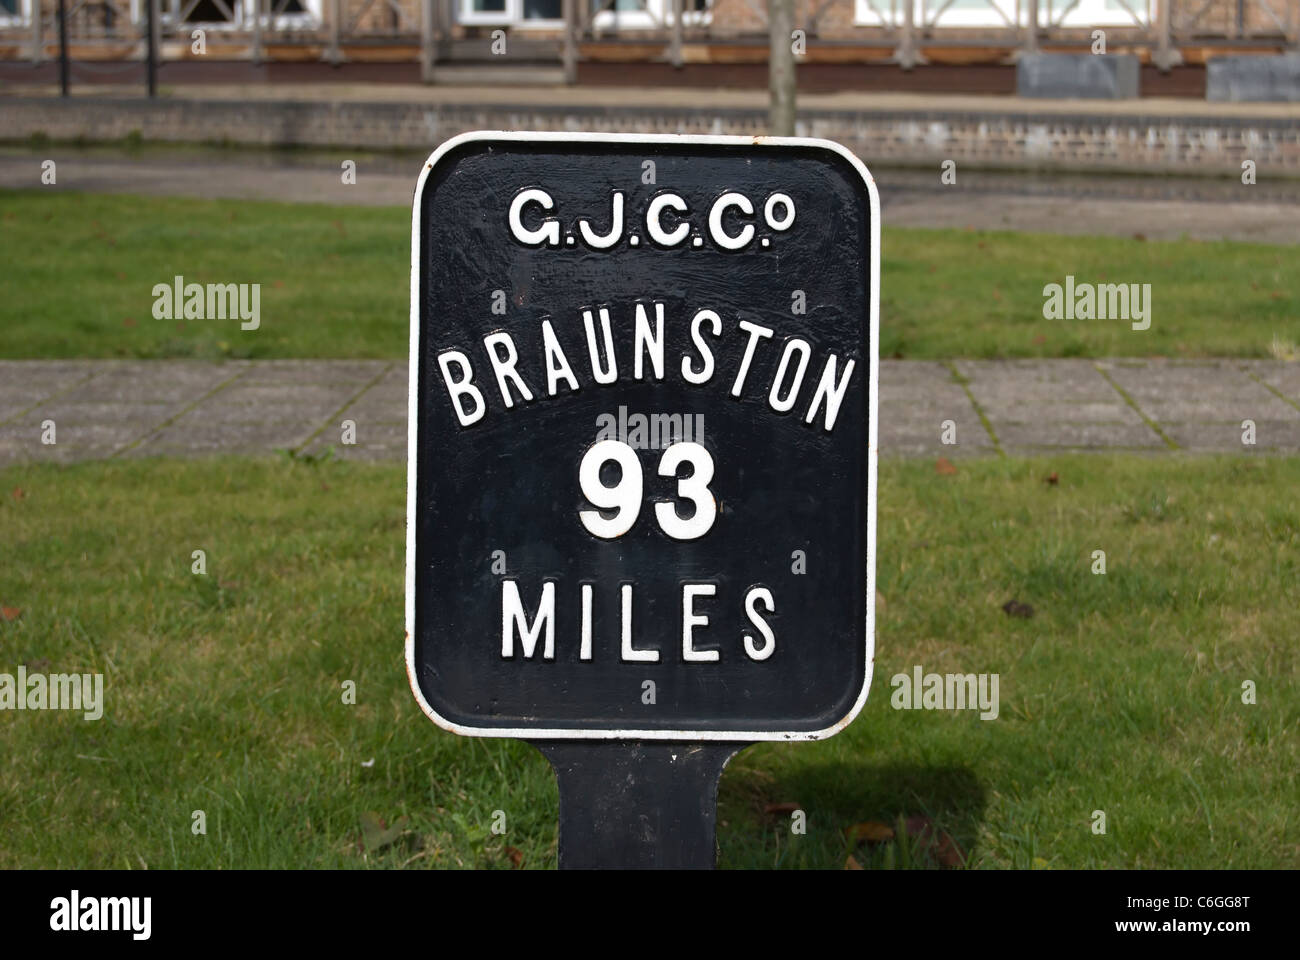 mile marker adjacent to the grand union canal at brentford lock, london, england, giving distance to braunston - Stock Image